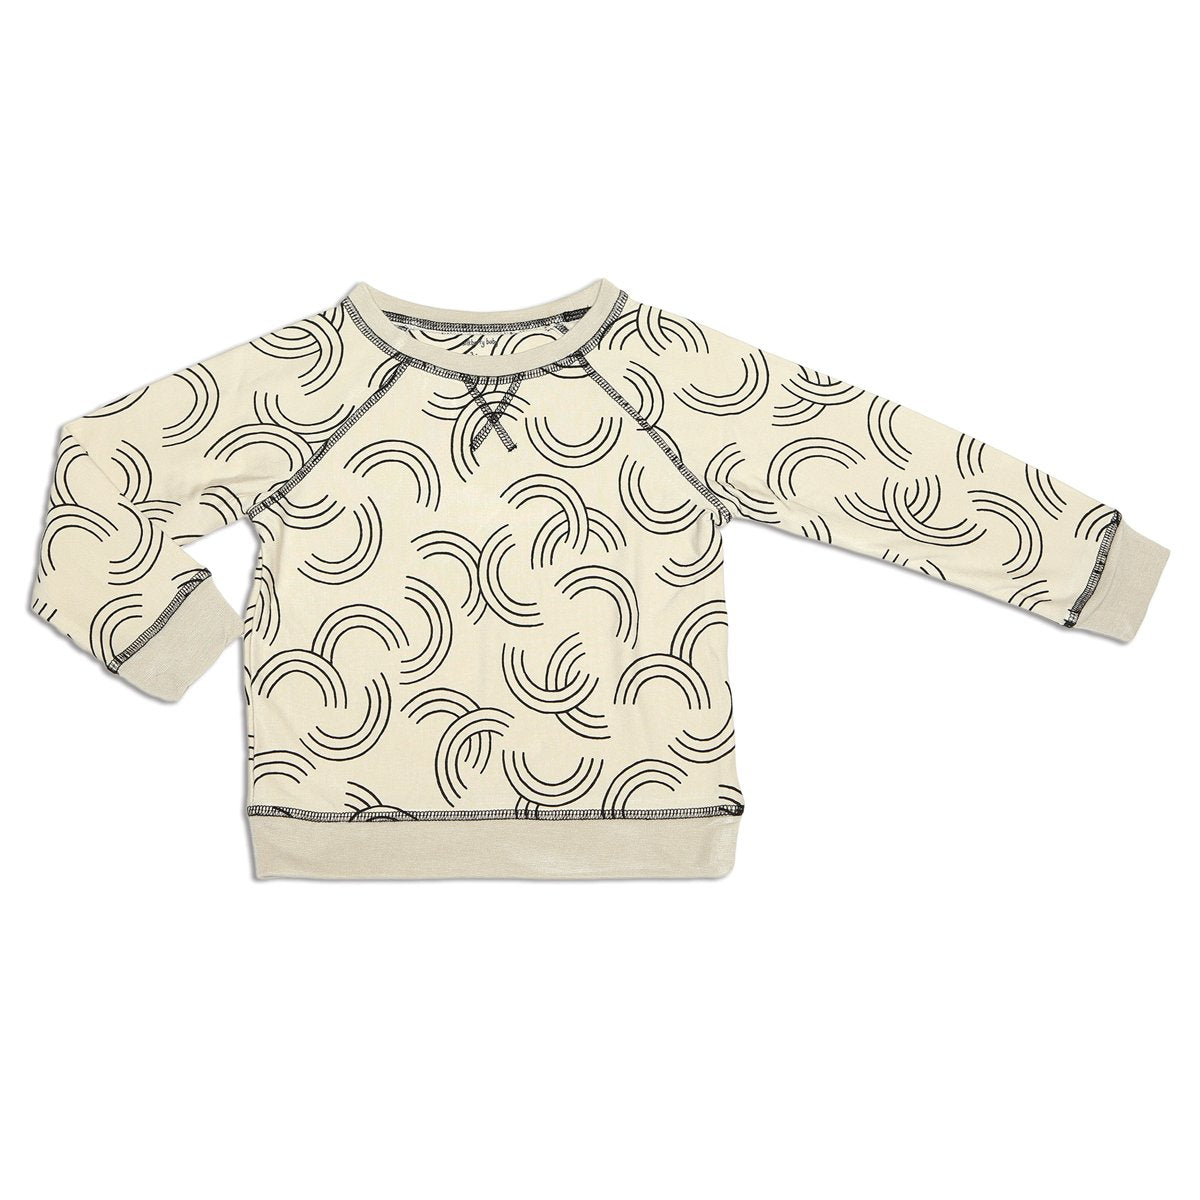 bamboo fleece sweatshirt rainbow toss print